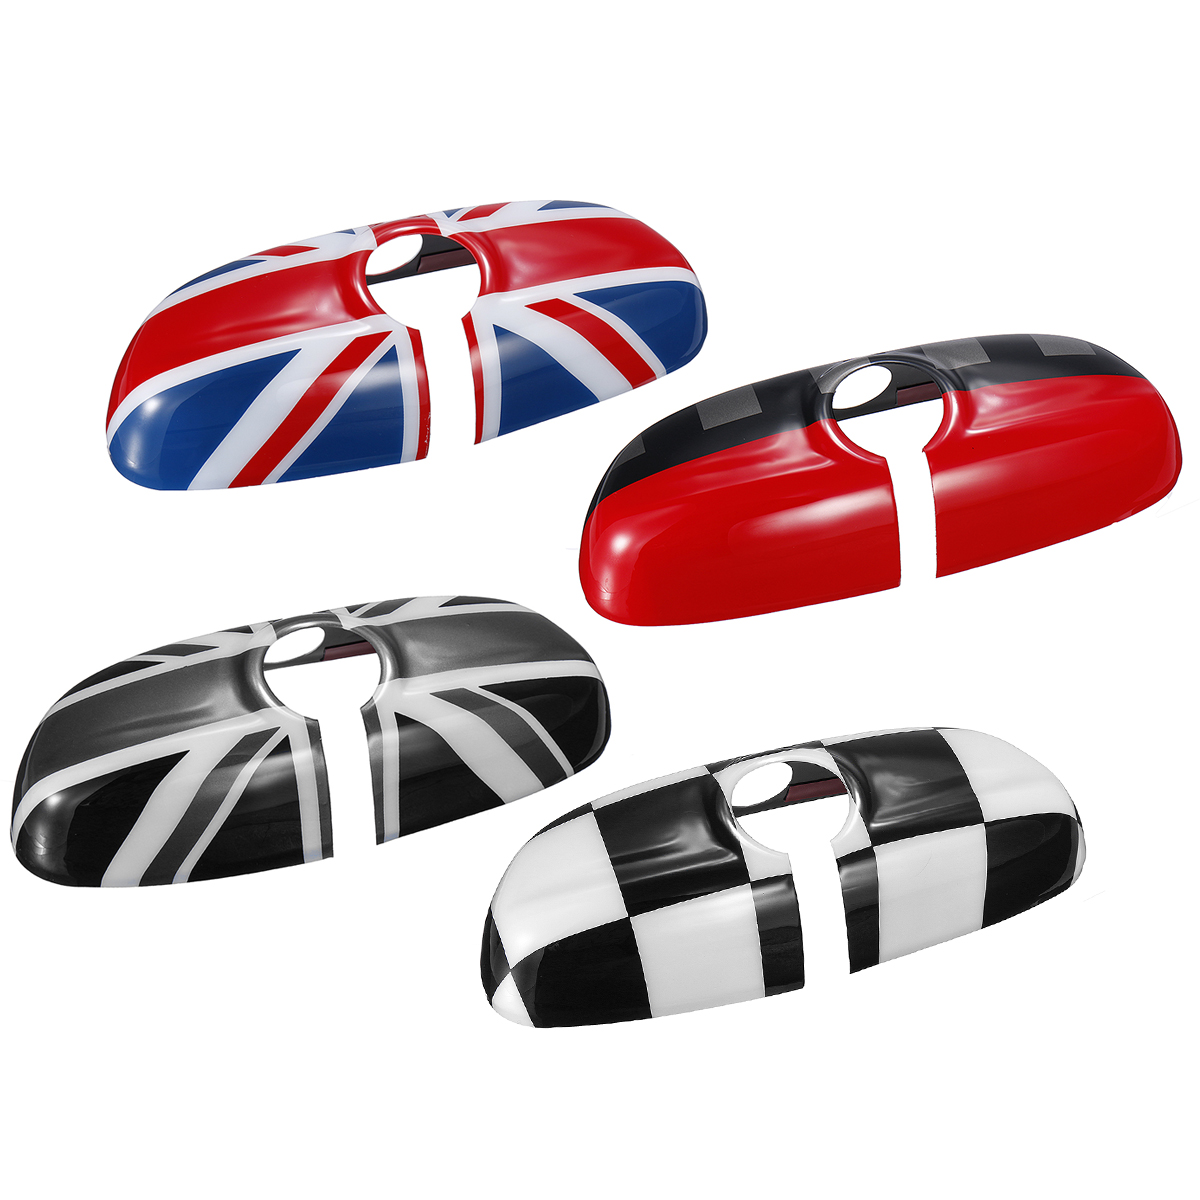 Pc Car Rear View Mirror Case Cover UK Flag Sticker Decoration For Bmw For BMW  For MINI Cooper JCW S One+ F54 F55 F56 F60